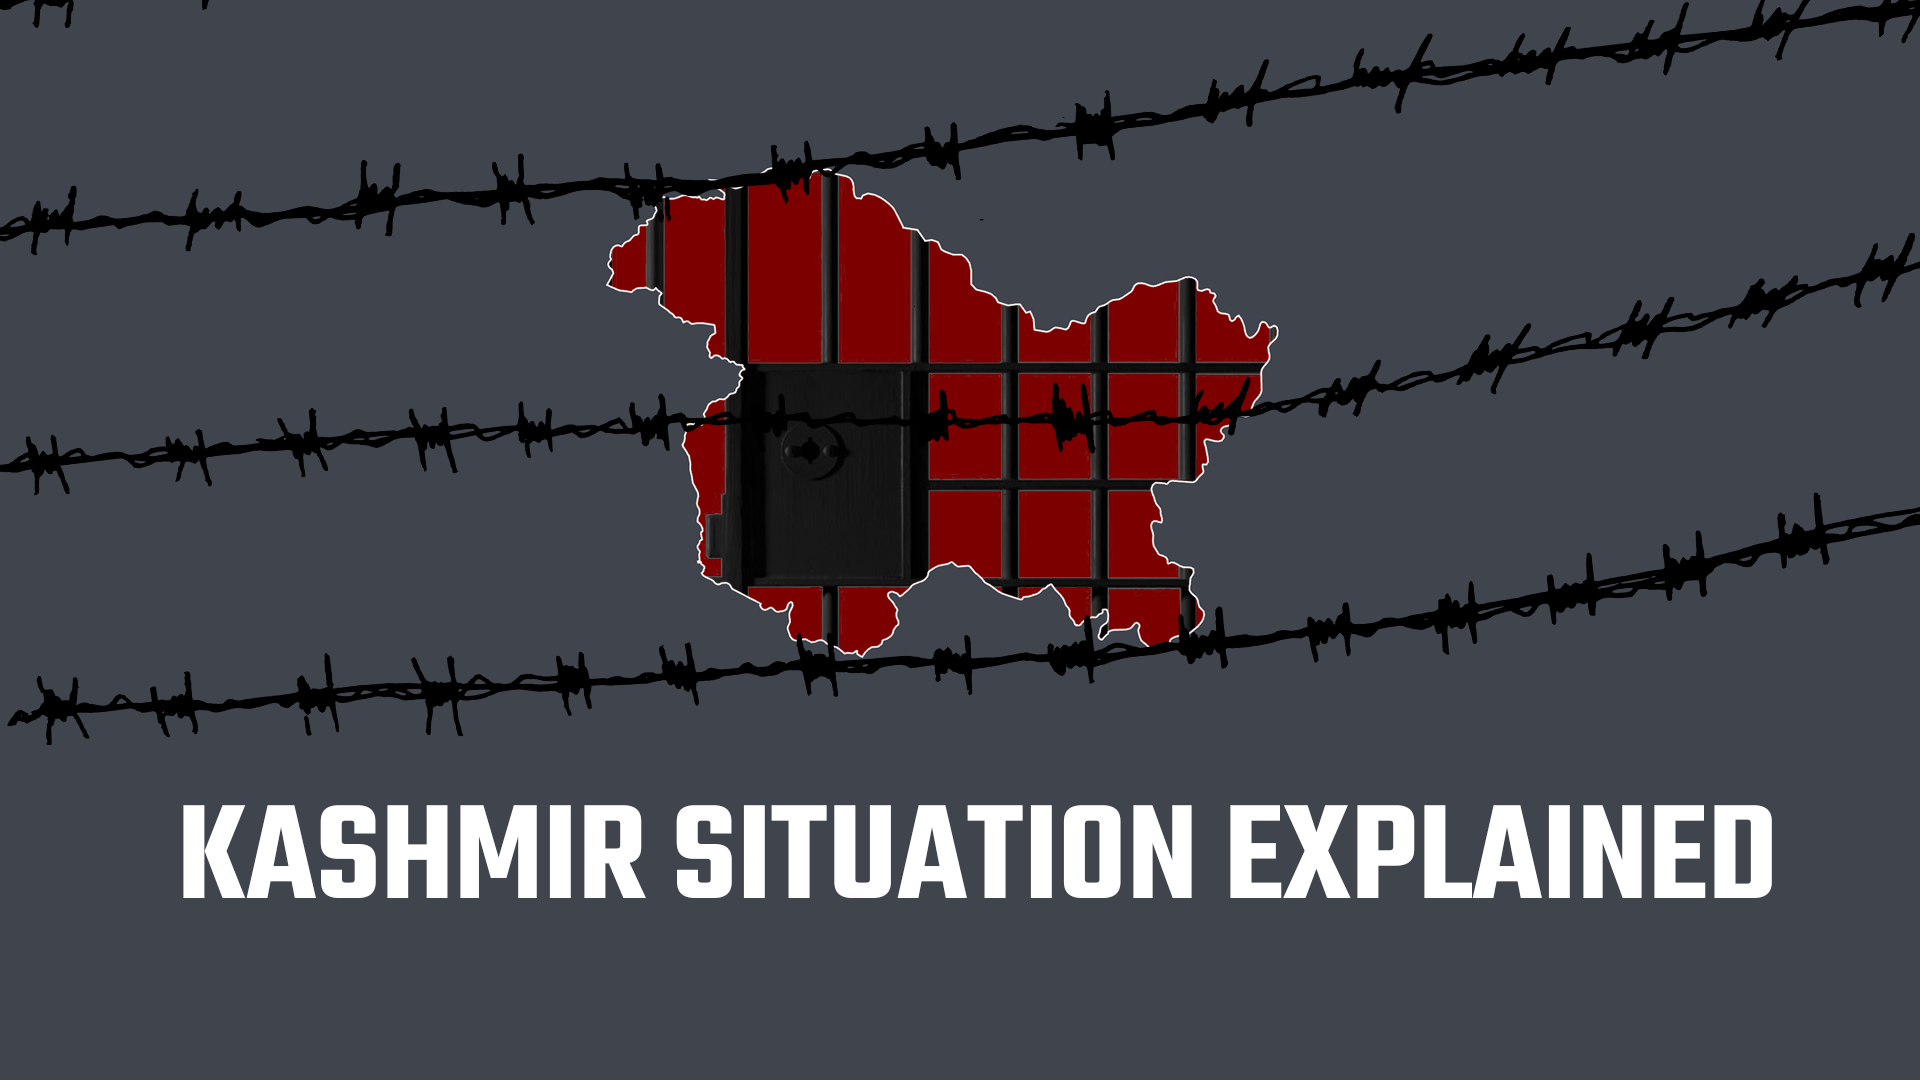 Kashmir situation explained_Article 370